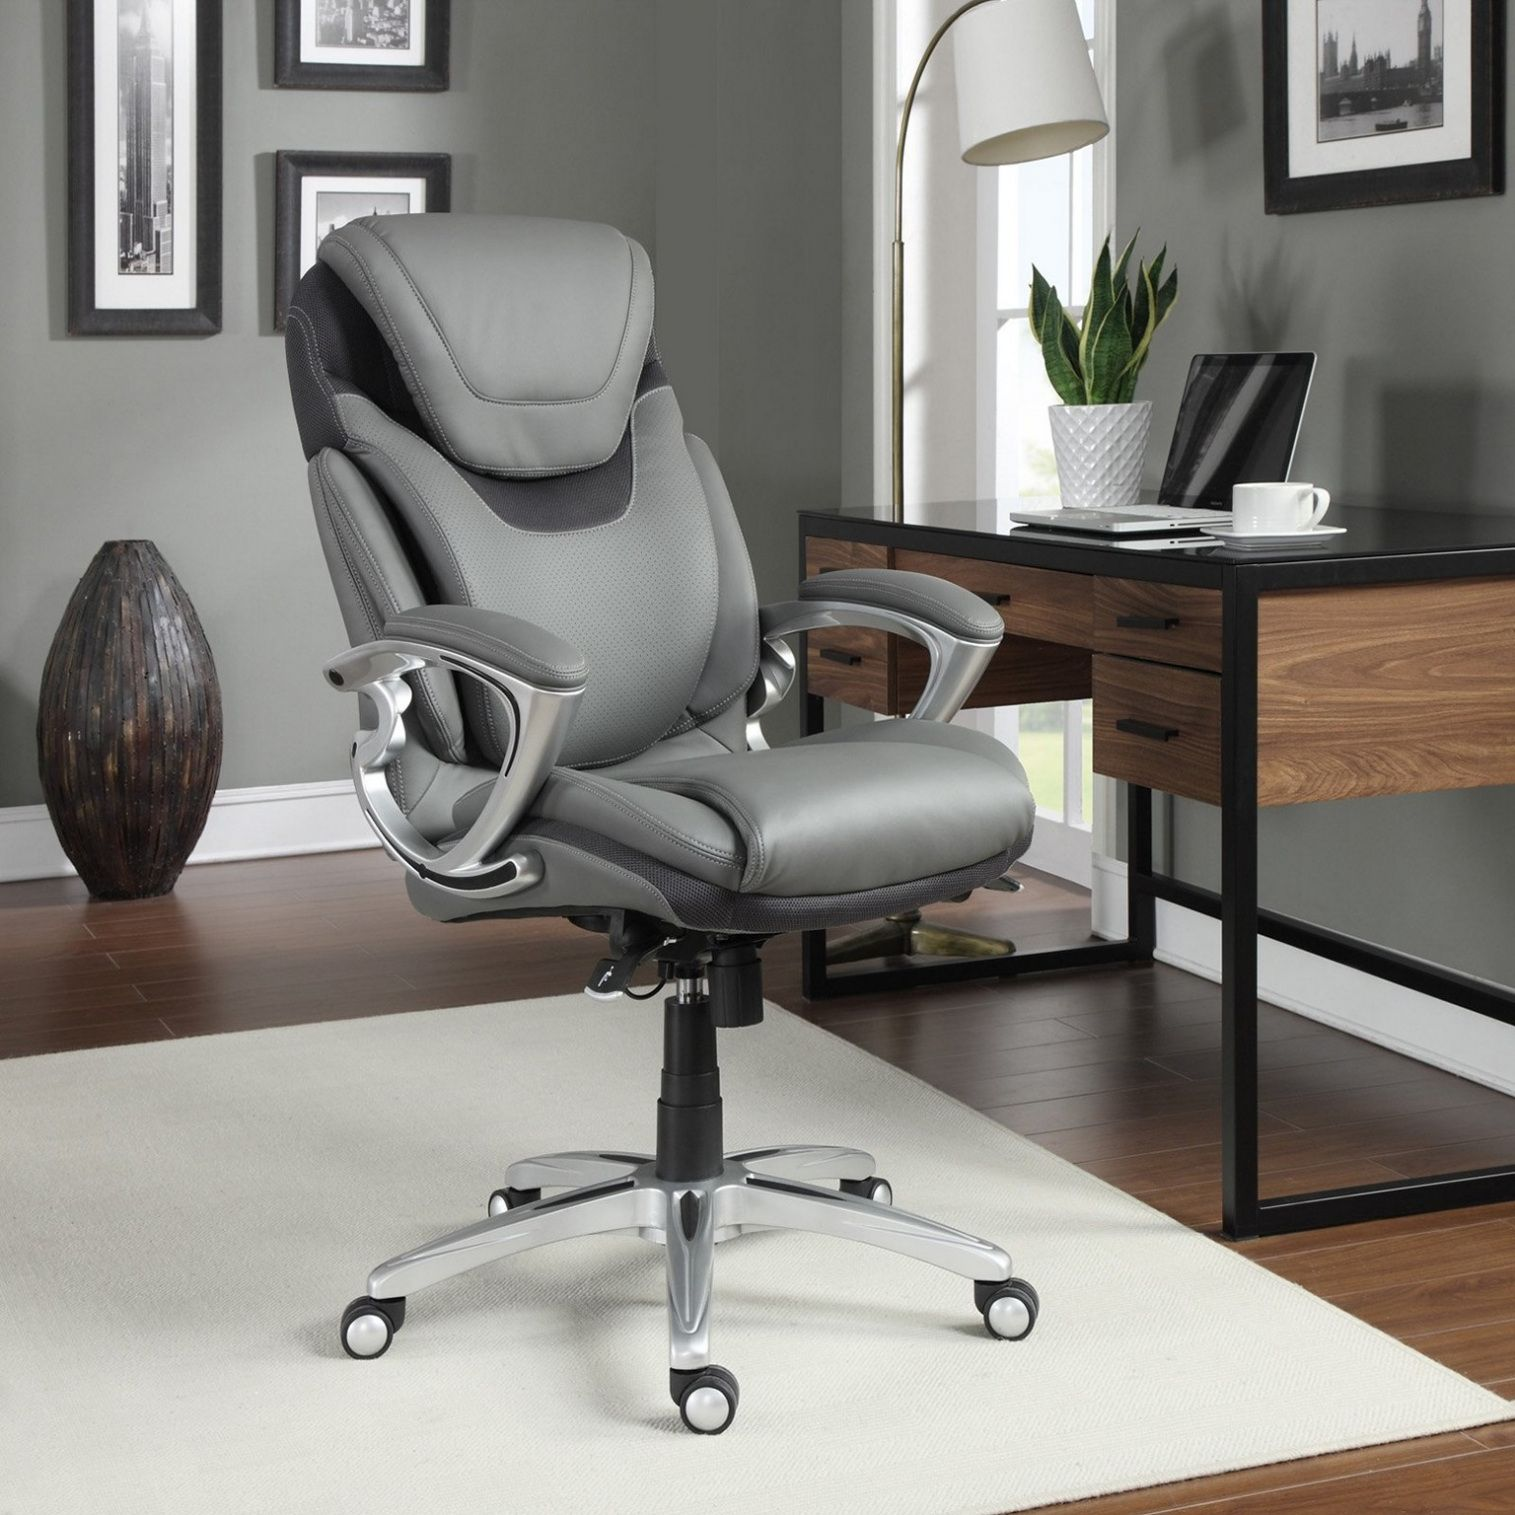 rests your shins expensive cool office worth chairs in least most size world weight sitting front about it comfortable remodel full shown are kneeling the leather best desk of part chair knees